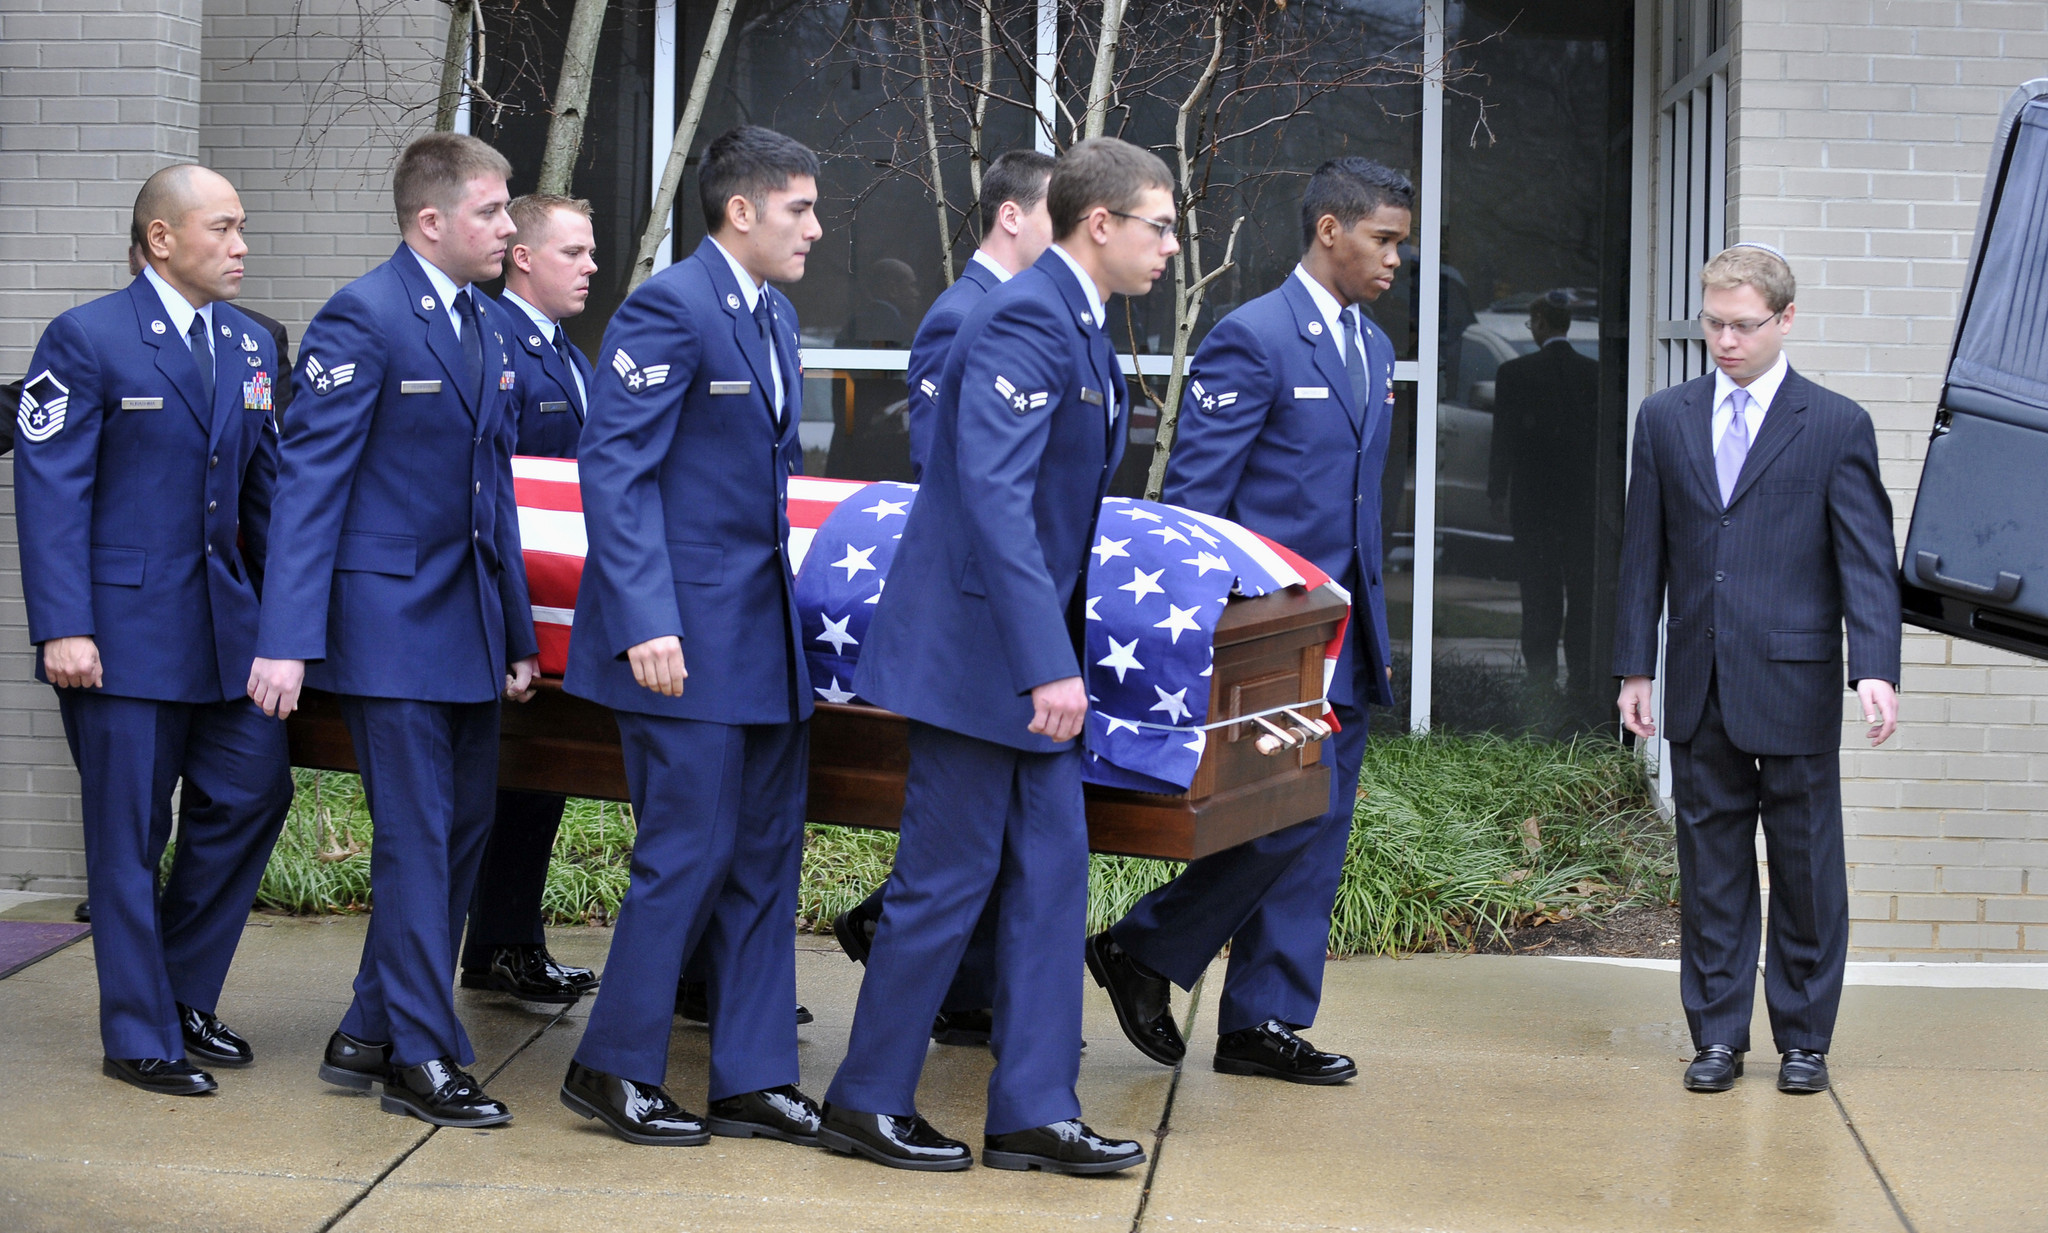 Pallbearers carry the flag-covered casket at the funeral for Airman 1st Class Matthew Ryan Seidler who was killed in Afghanistan. The services were held at Sol Levinson & Bros. funeral home in Pikesville.